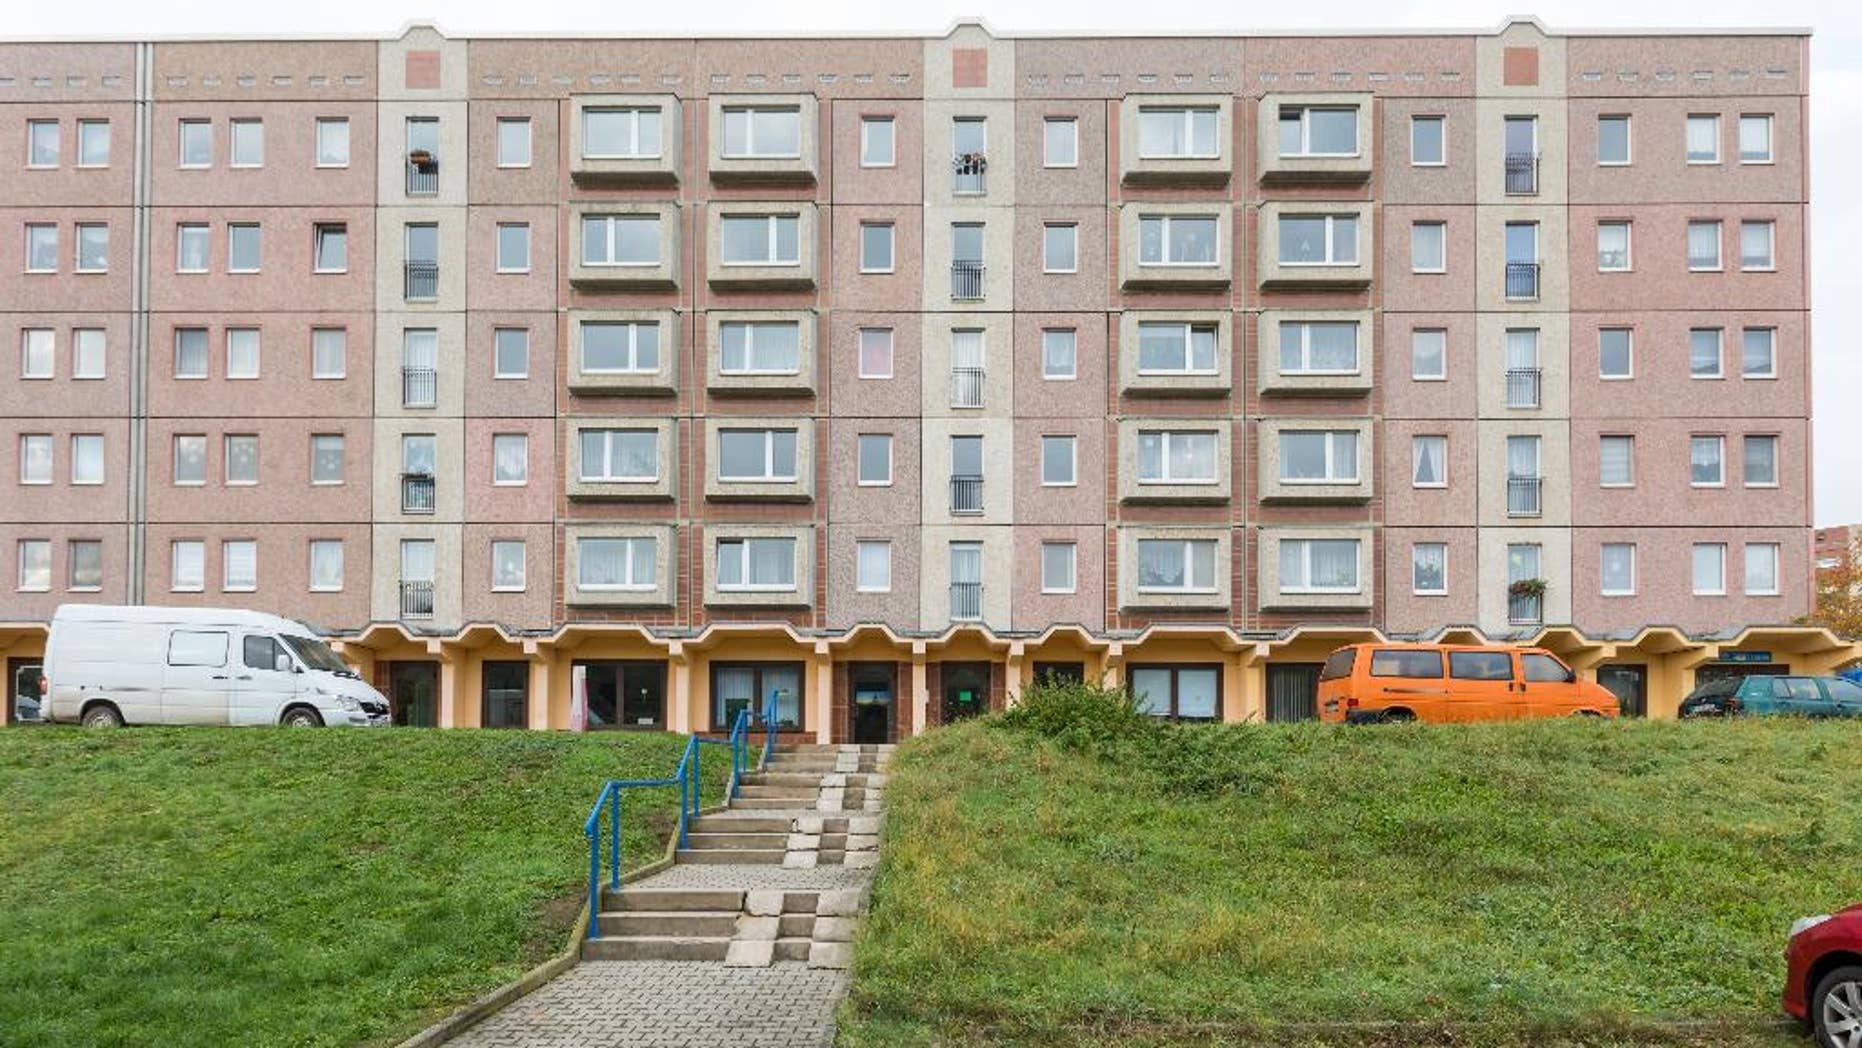 "An apartment block photographed  in Schmoelln, eastern Germany, Sunday Oct. 23, 2016.  Officers were called to this building in Schmoelln on Friday afternoon  Oct. 21, 2016 by the caregiver for a group of young migrants, who reported that a 17-year-old Somali boy was acting violently, police said. When they arrived, he was sitting on a fifth-floor window ledge. Police and fire officers tried to persuade the teenager not to jump, but he leapt and died shortly afterward of his injuries.   Onlookers apparently shouted ""Jump!"" before the  teenage migrant leapt from the  apartment block in the  eastern German town, suffering fatal injuries, the mayor said Saturday Oct. 22, 2016 .  (Michael Reichel/dpa via AP)"